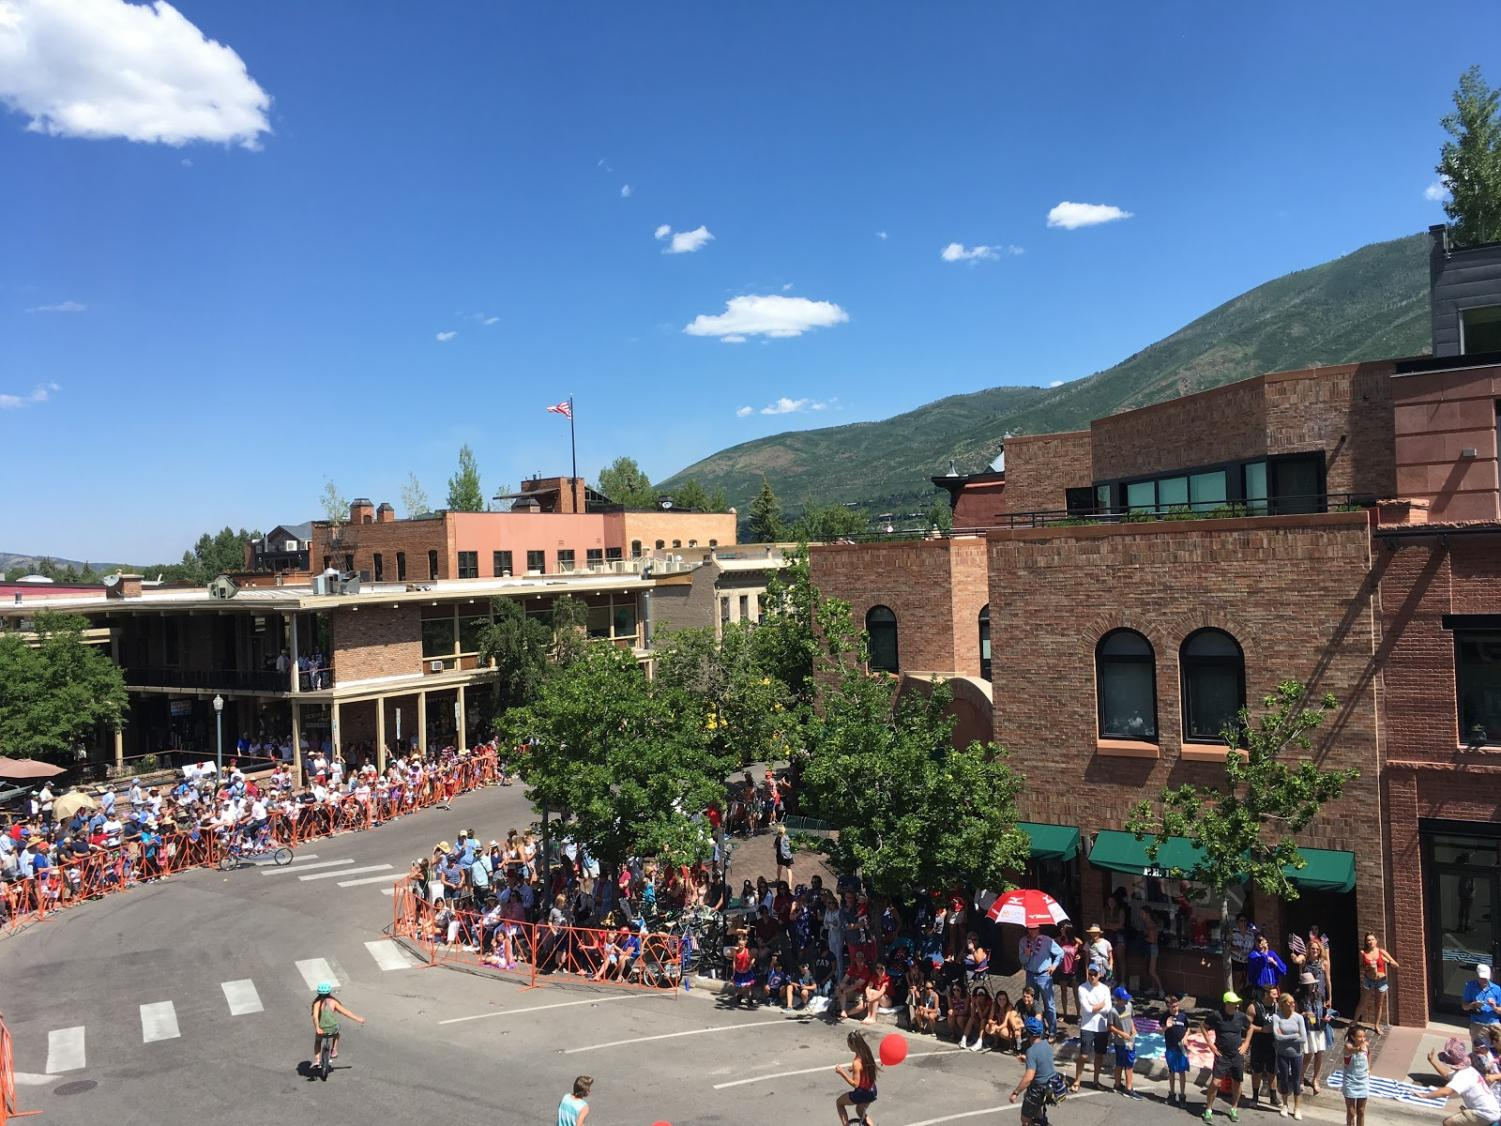 Downtown Aspen on a sunny 4th of July morning. During high seasons such as the summer, businesses are able to generate high revenue, unlike off-season.